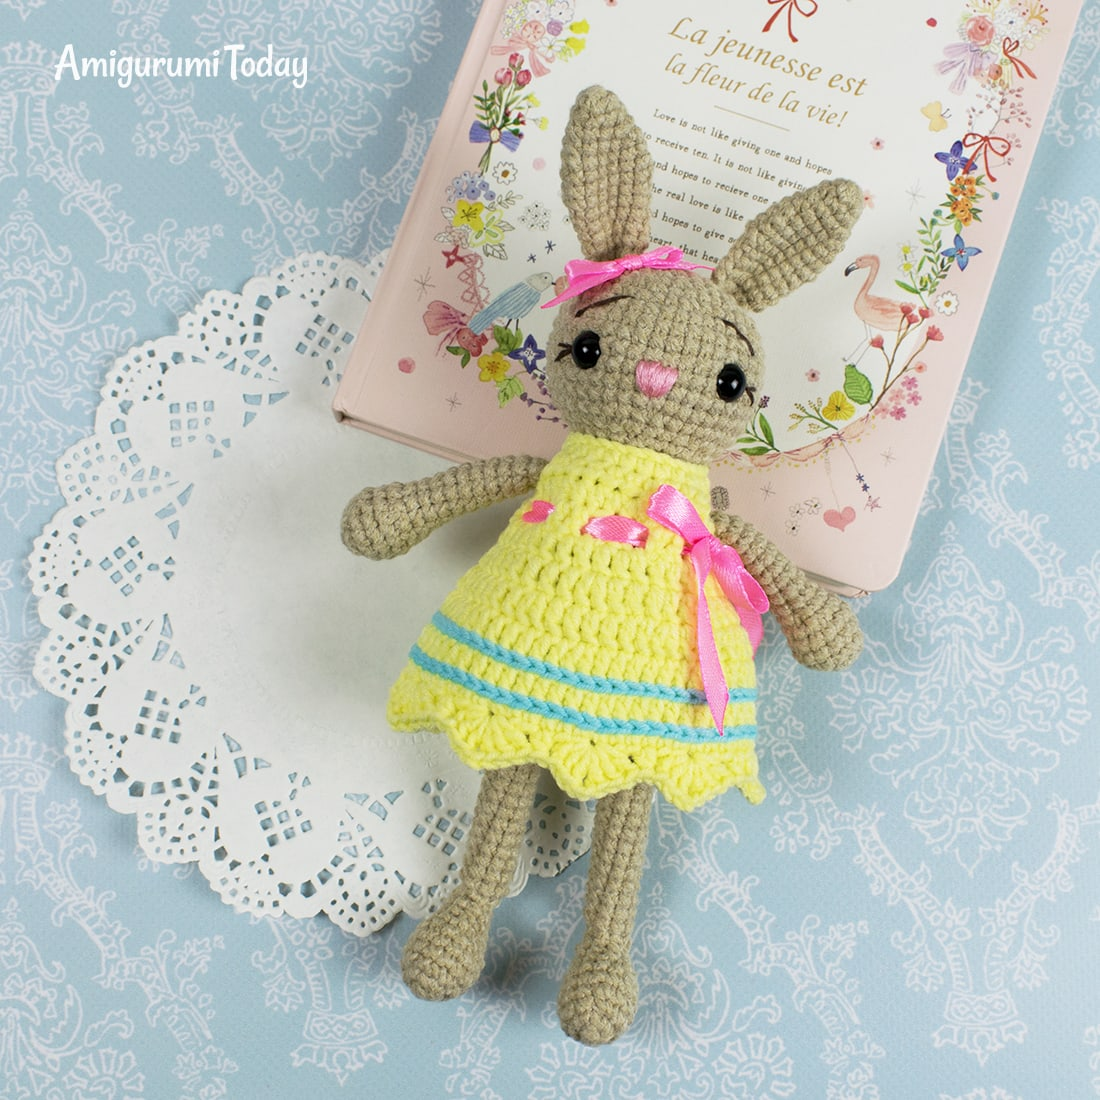 Amigurumi little crochet bunny pattern by Amigurumi Today